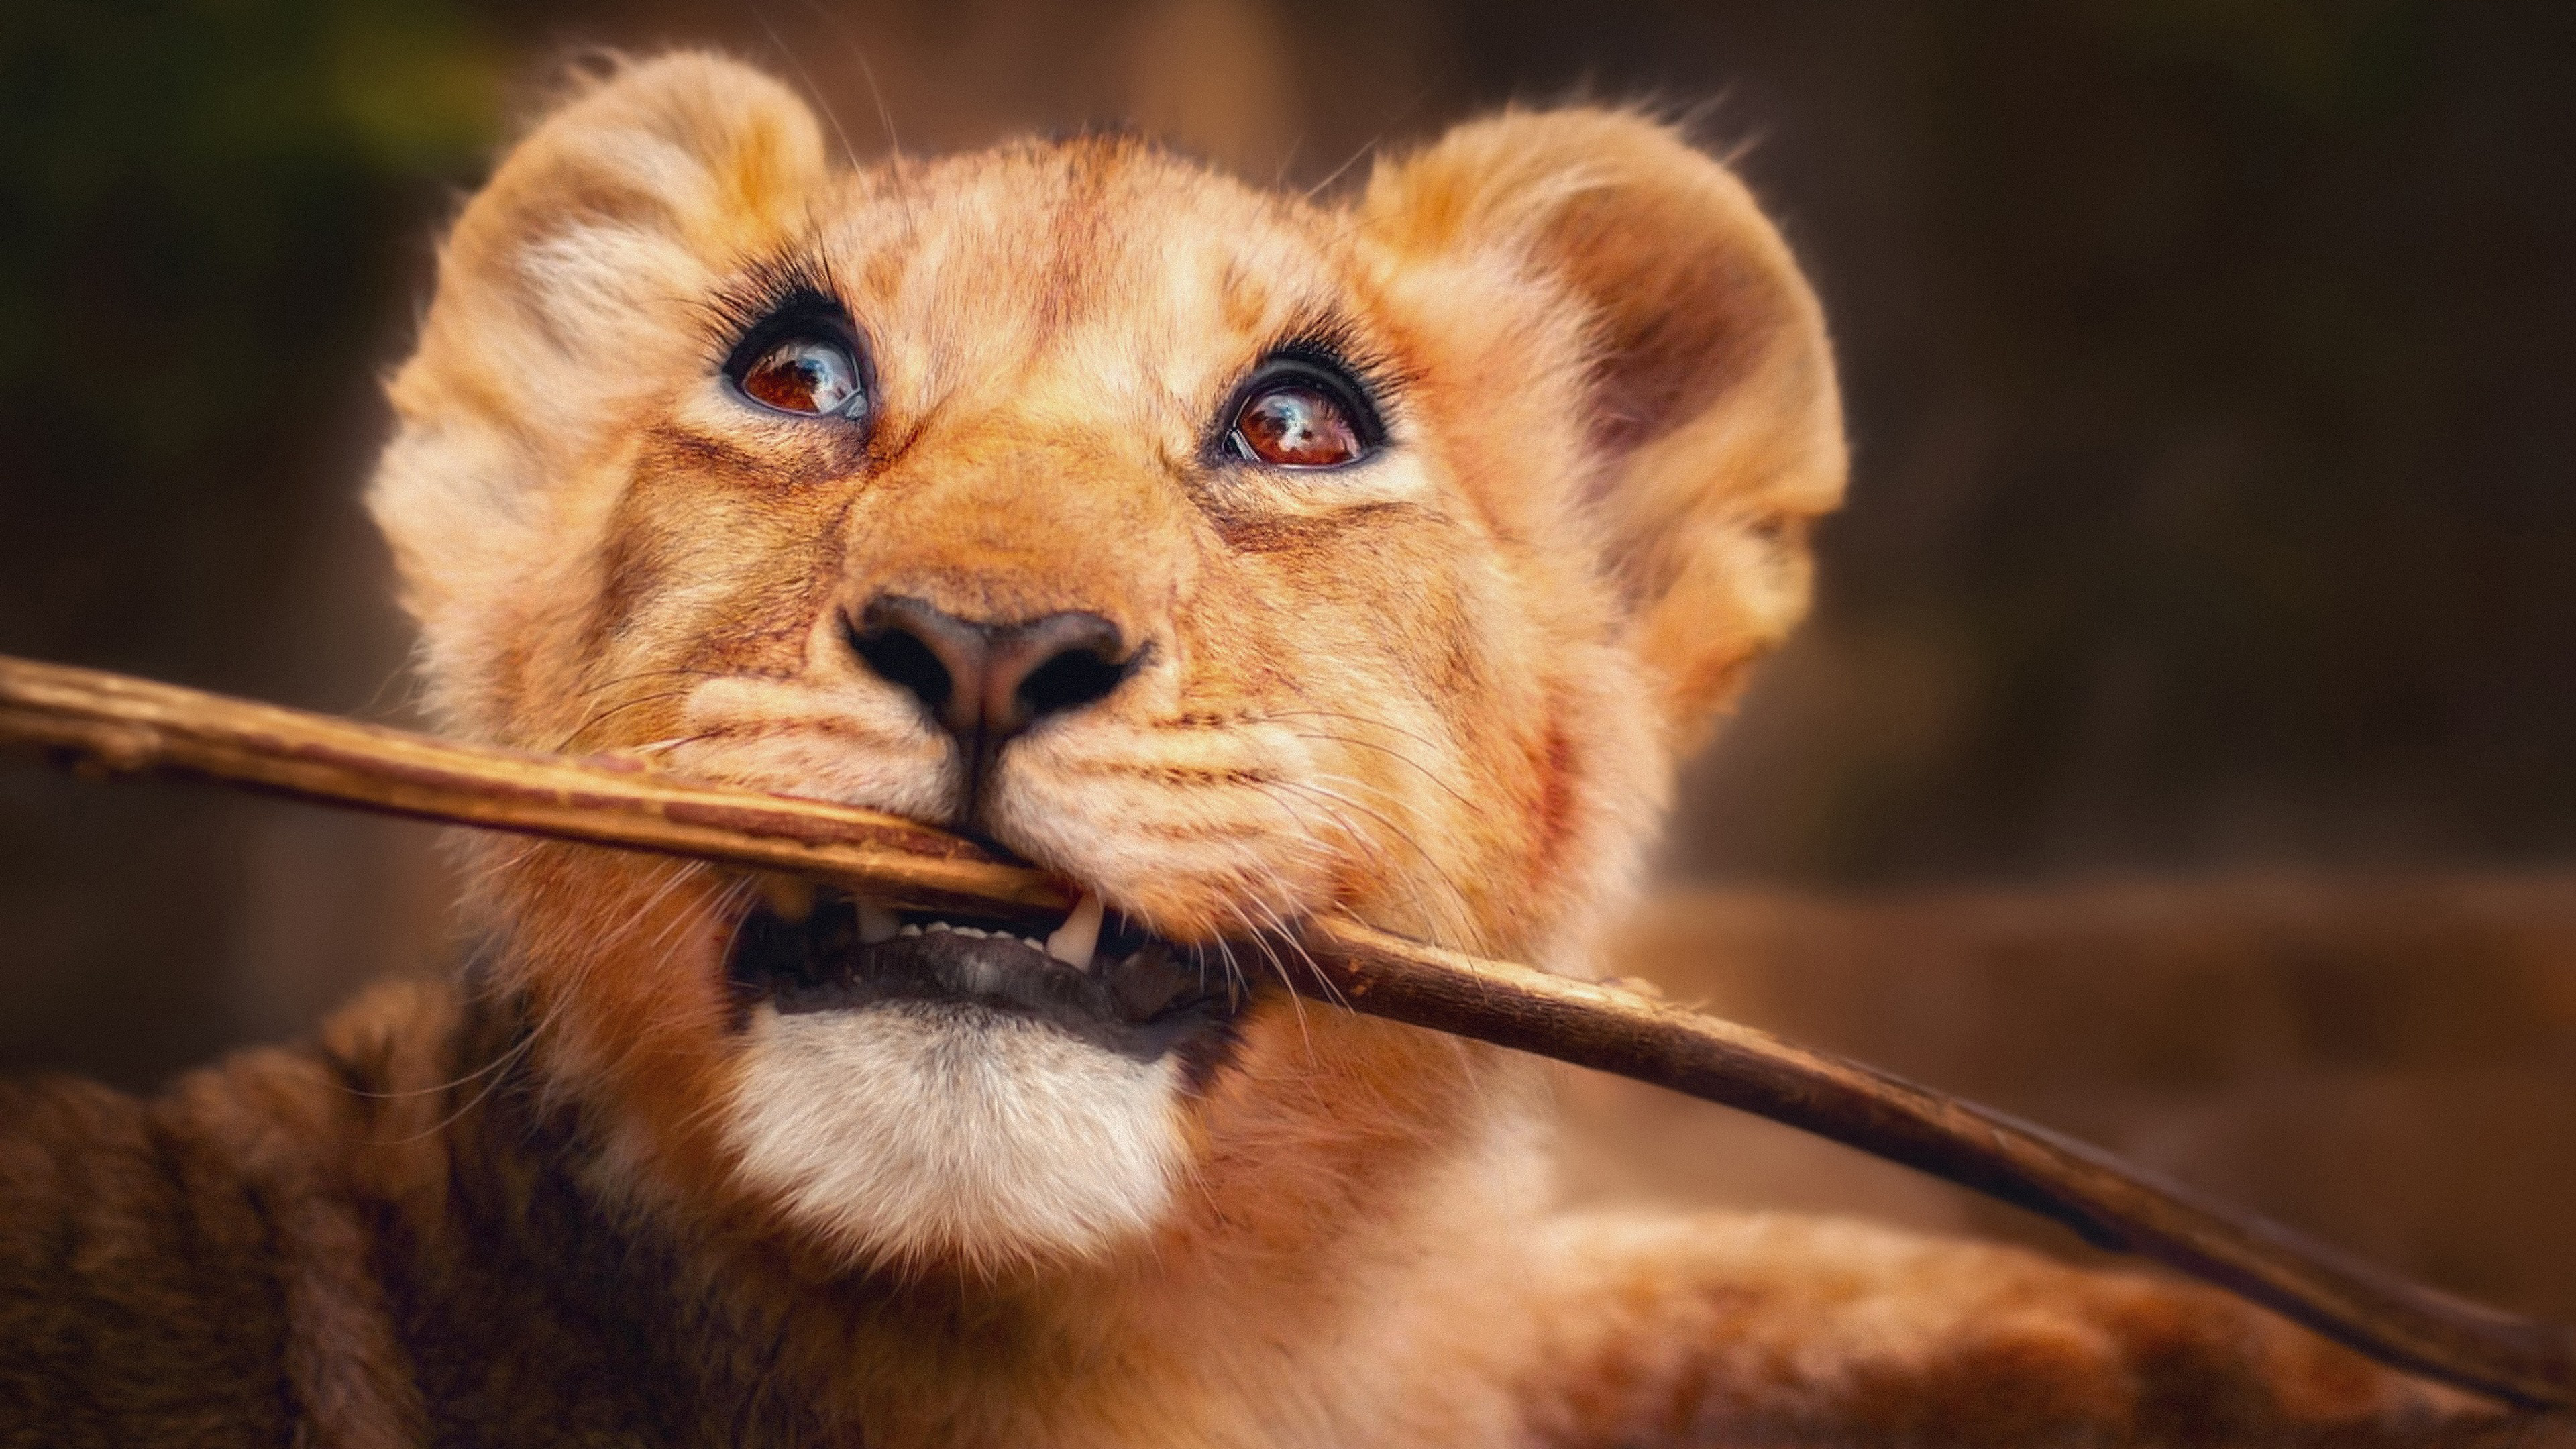 Lion With Stick In Mouth 4k, HD Animals, 4k Wallpapers ...